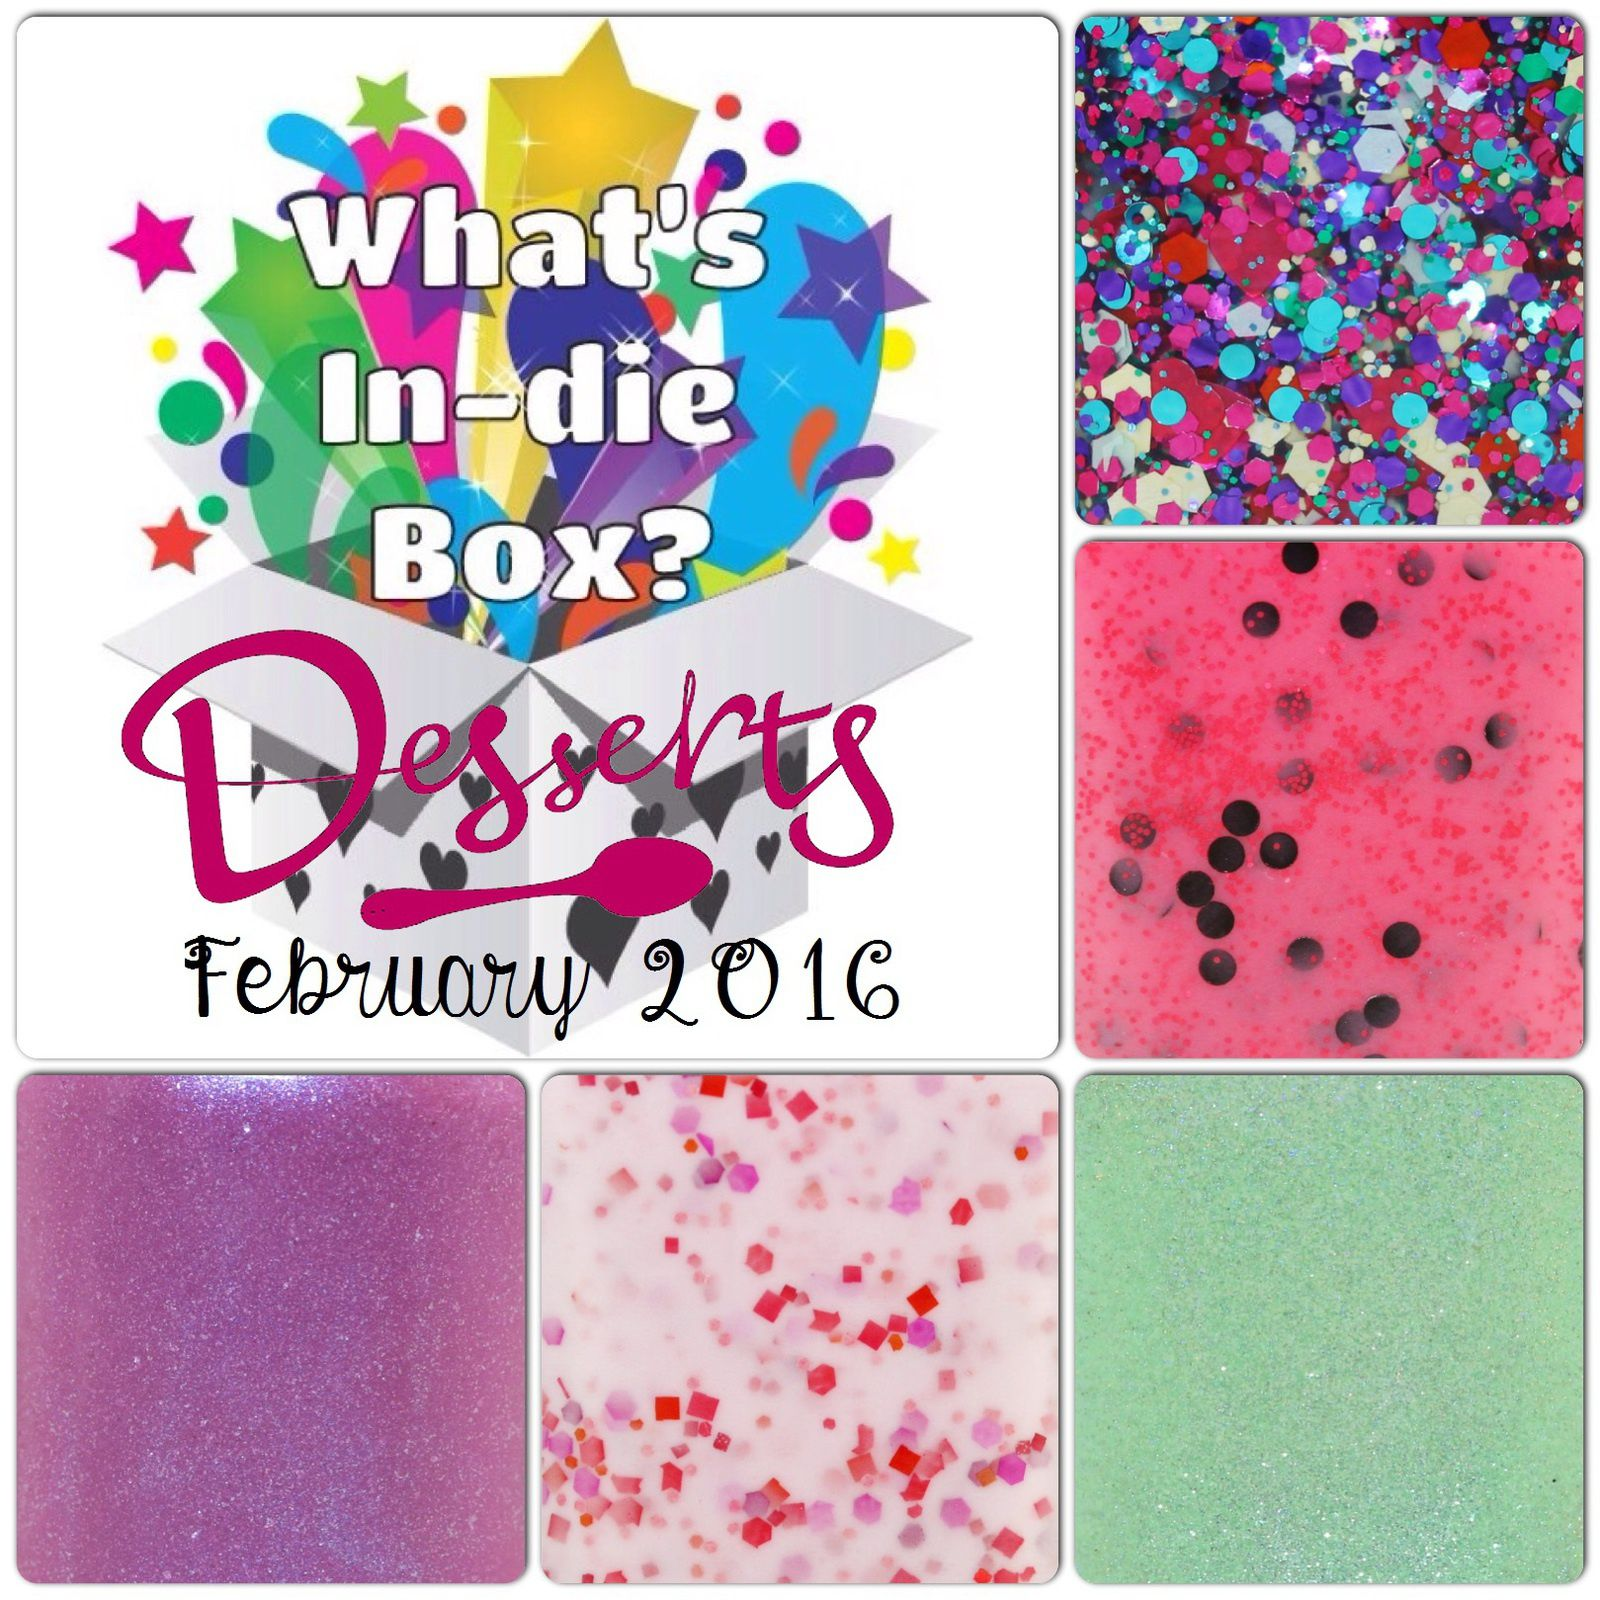 What's Indie Box - February 2016 - Desserts